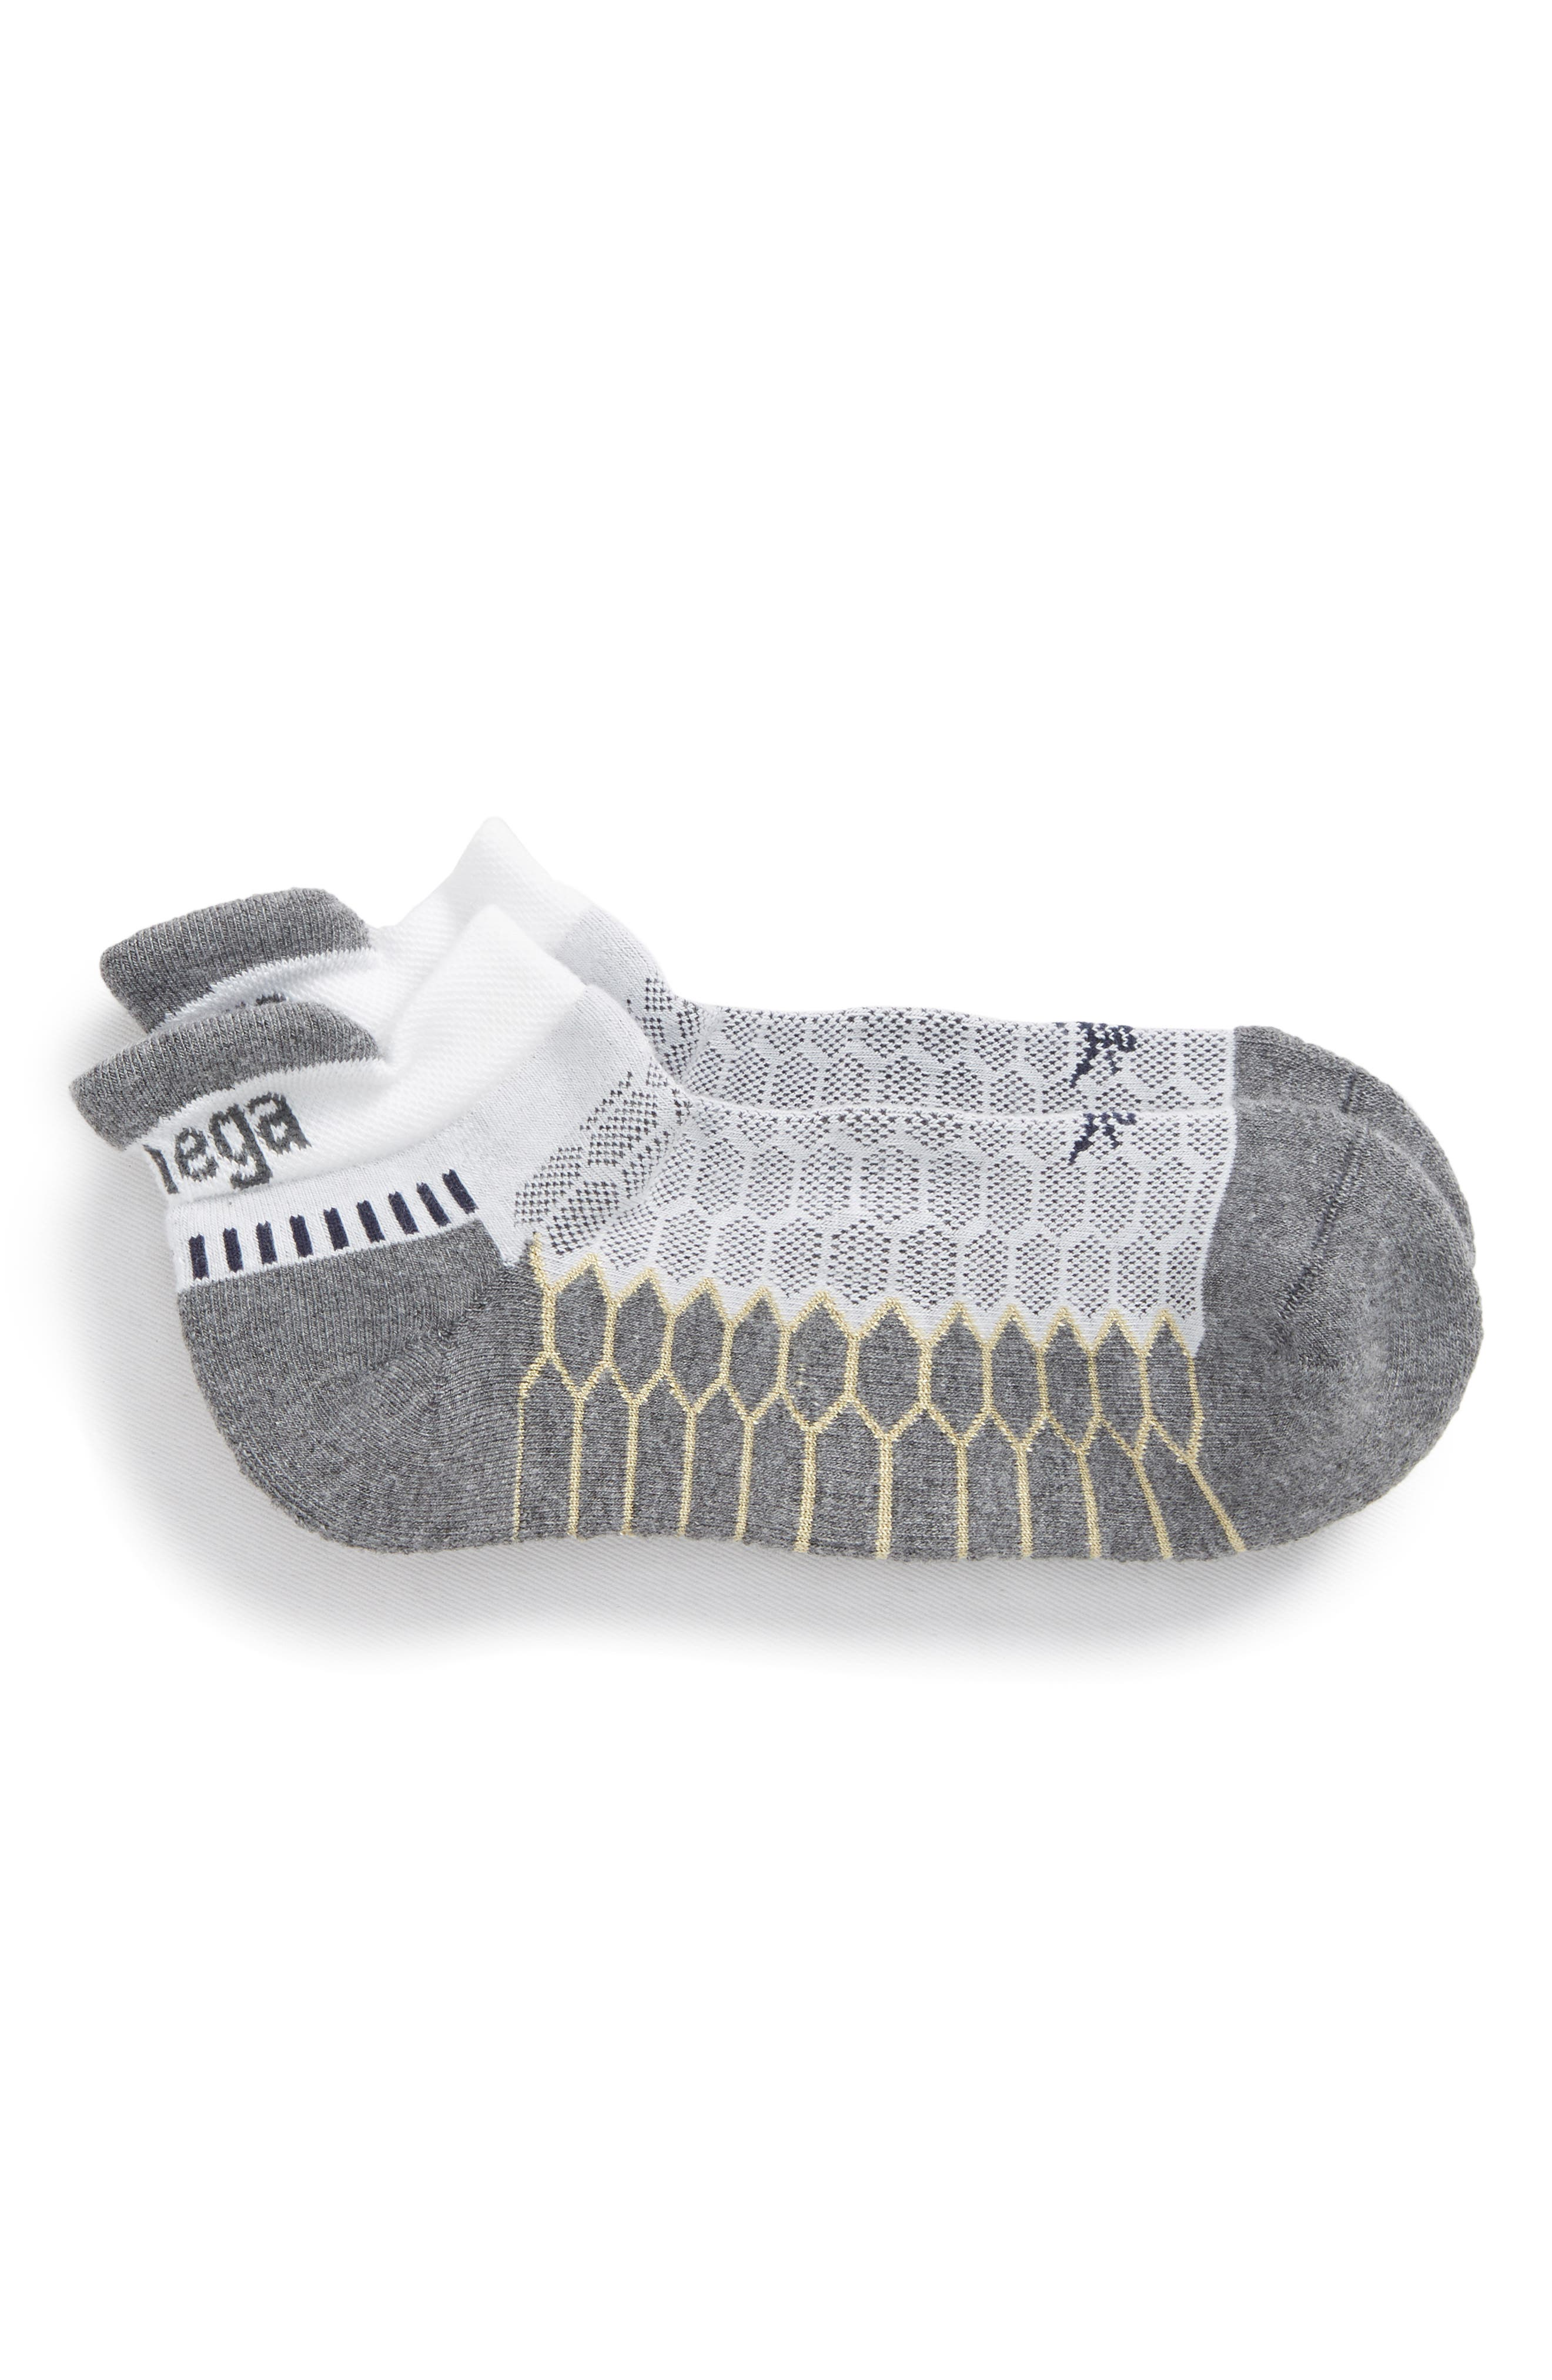 Silver Socks,                             Main thumbnail 1, color,                             WHITE/ GREY